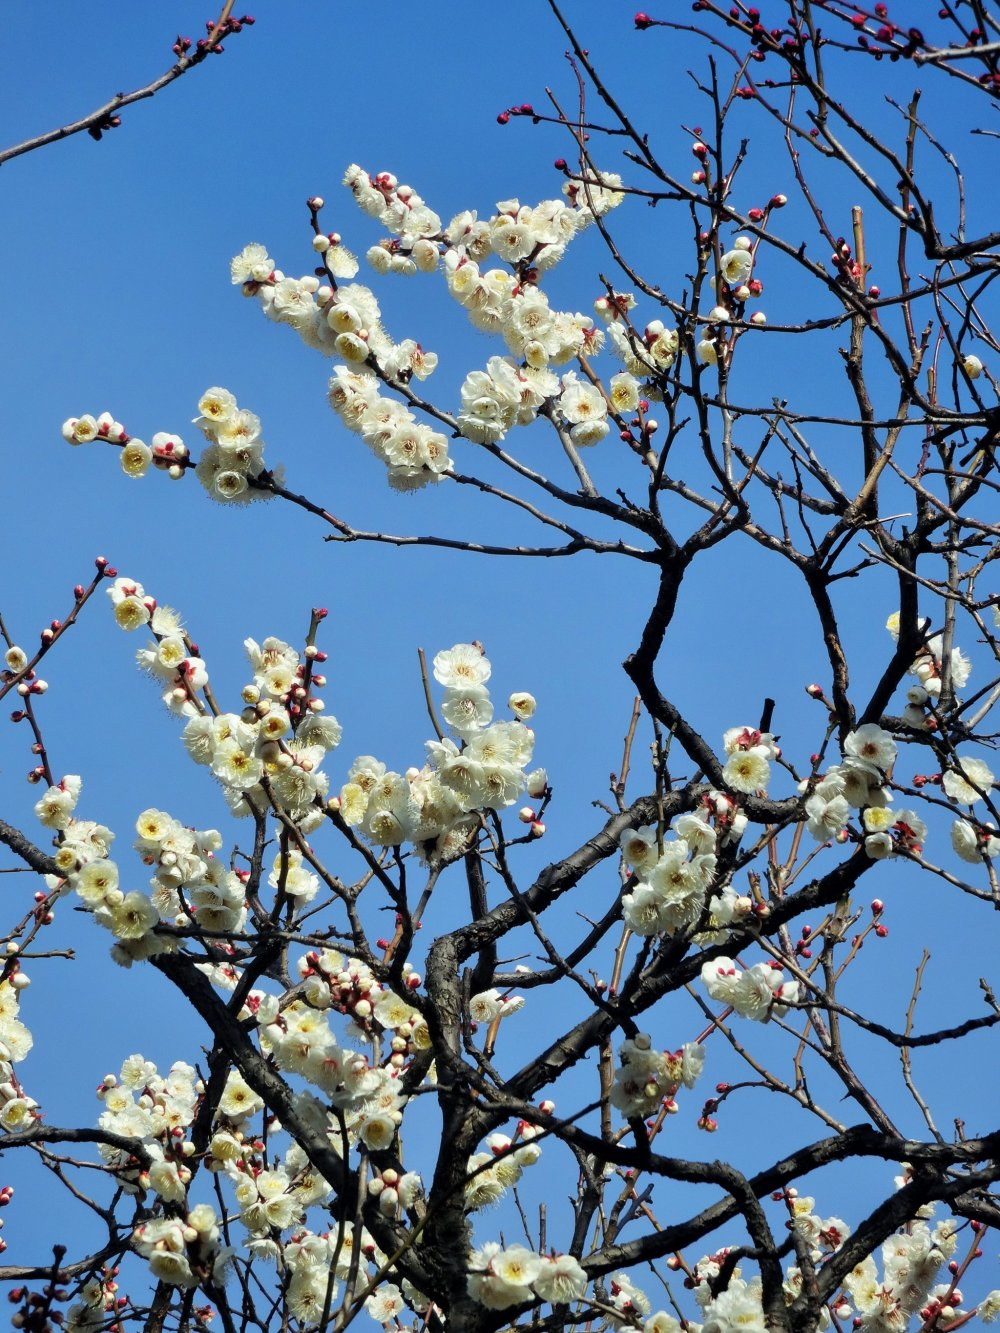 White blossoms make an excellent contrast against a blue sky